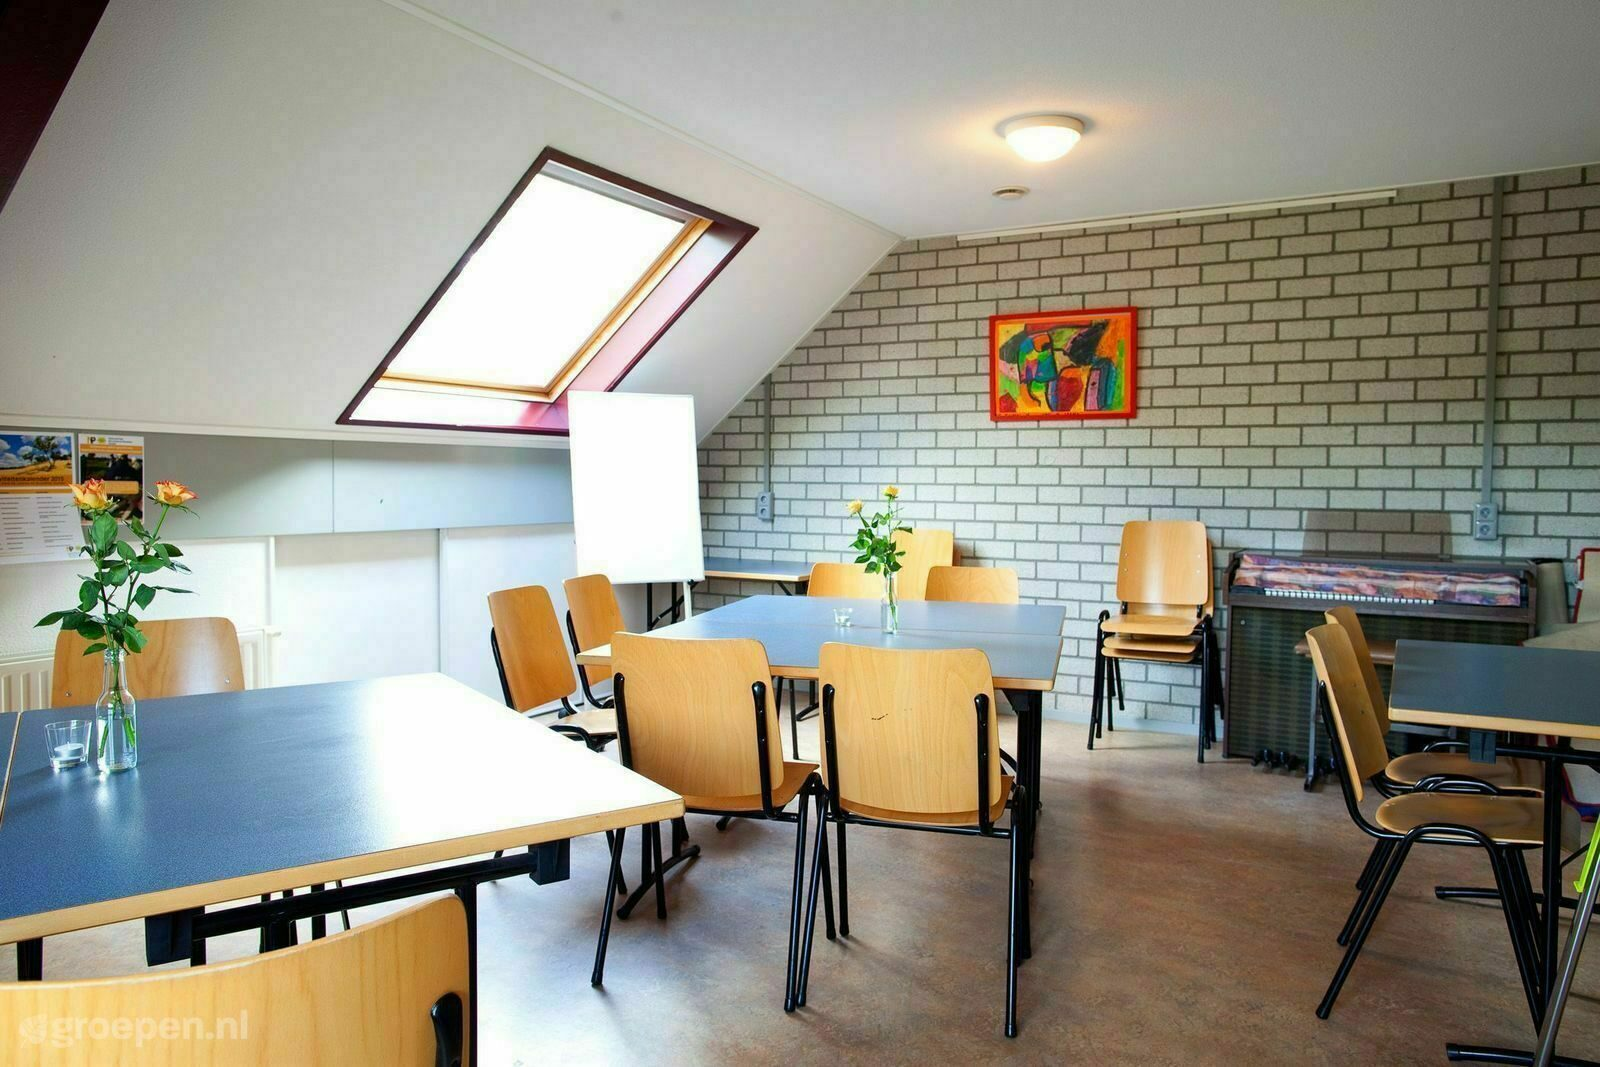 Group accommodation Drunen (copy)